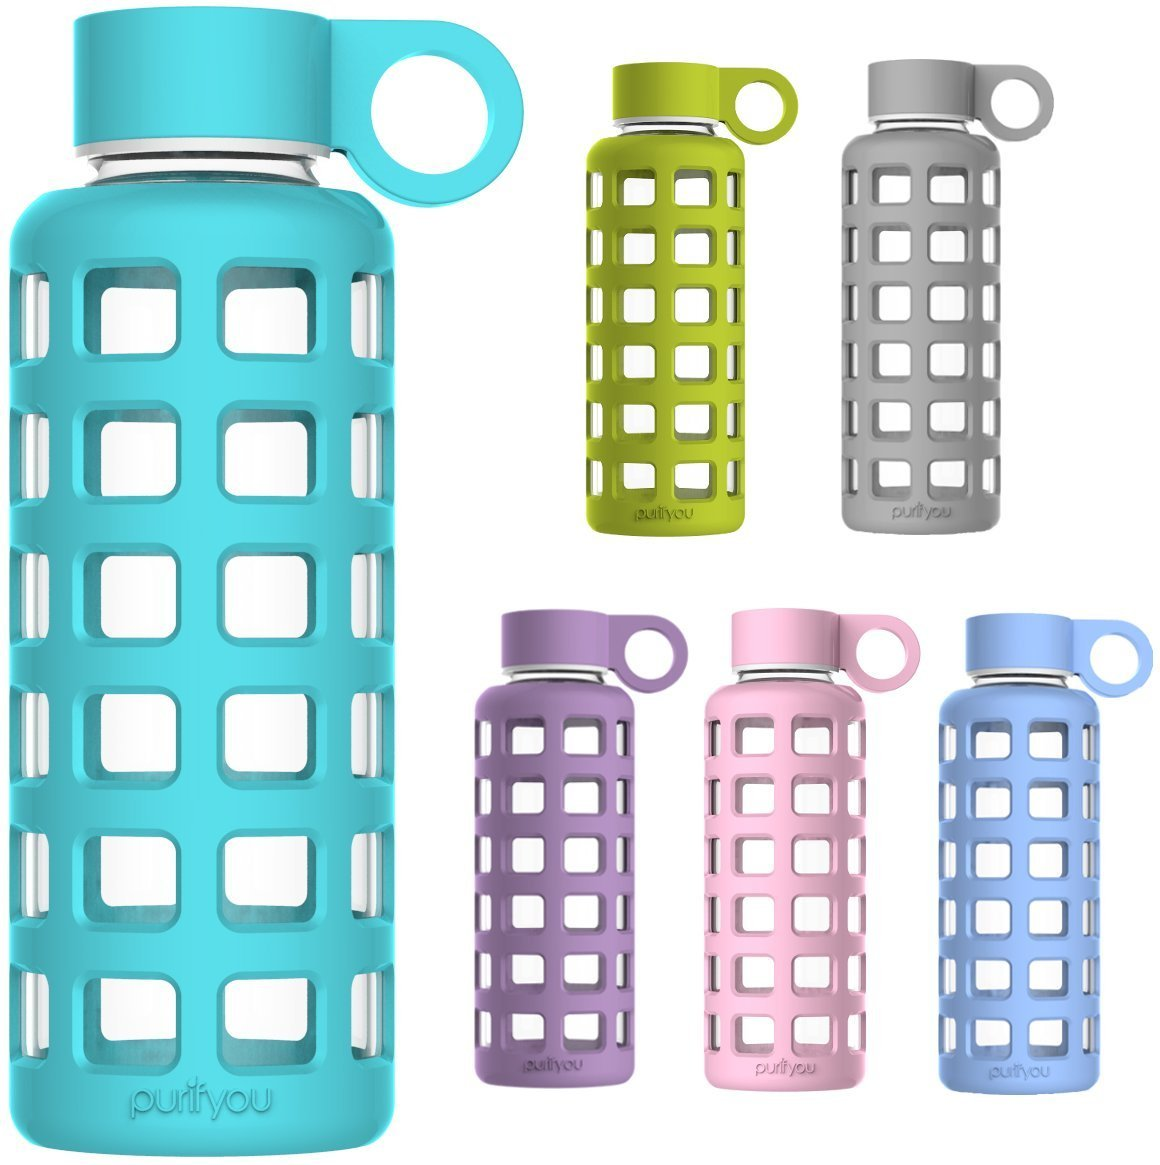 BPA Free Glass Water Bottle With Silicone Sleeve by Purifyou idtrythat